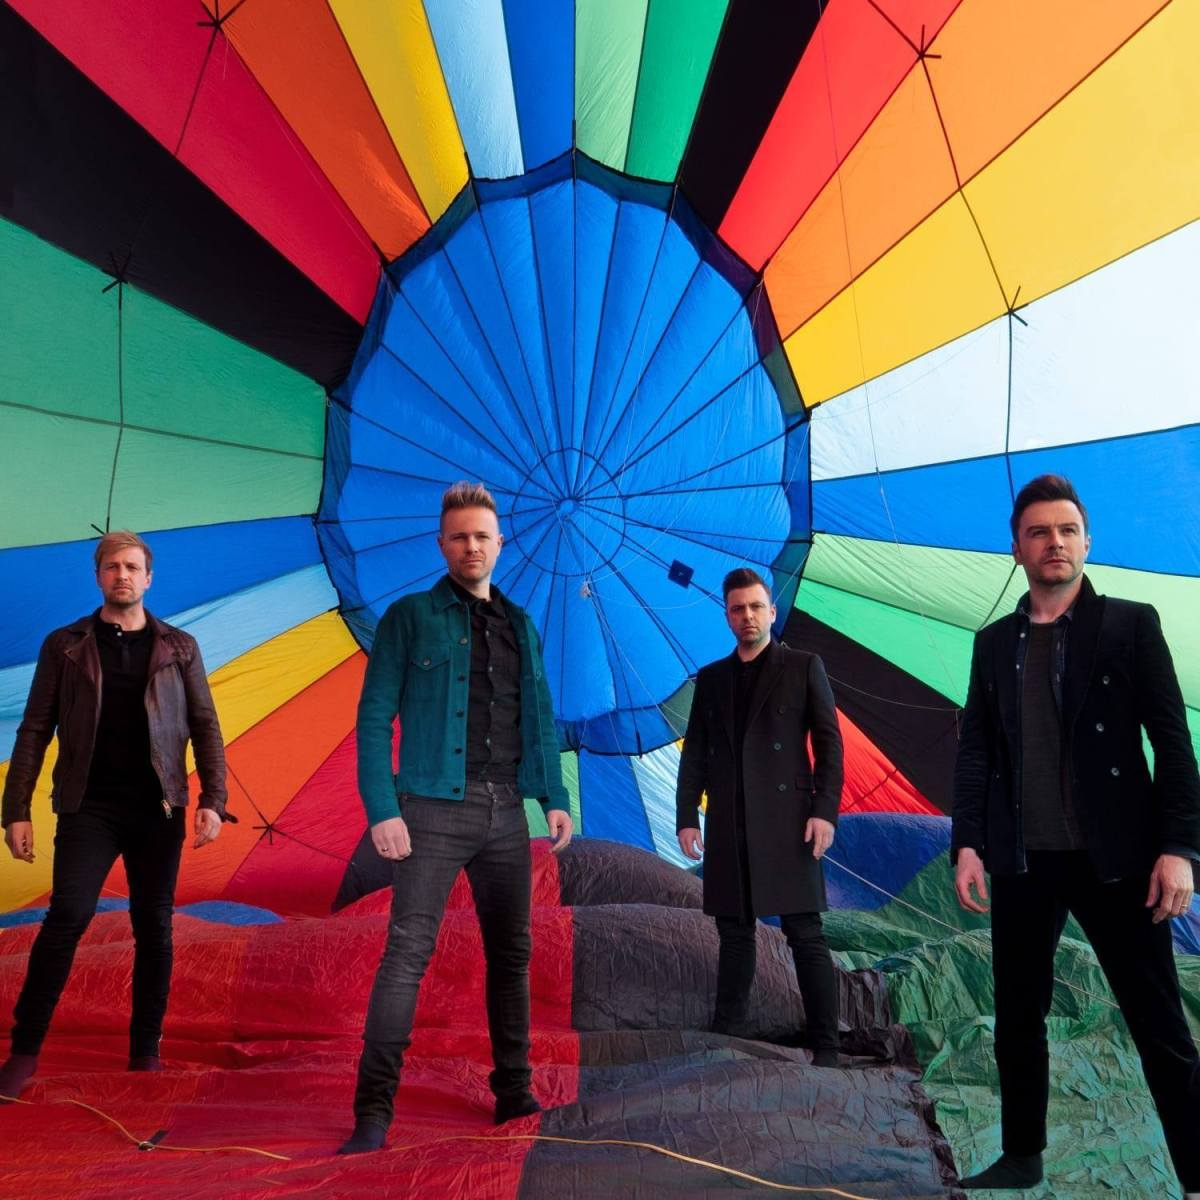 Westlife Return With New Single 'Hello My Love' Out Now